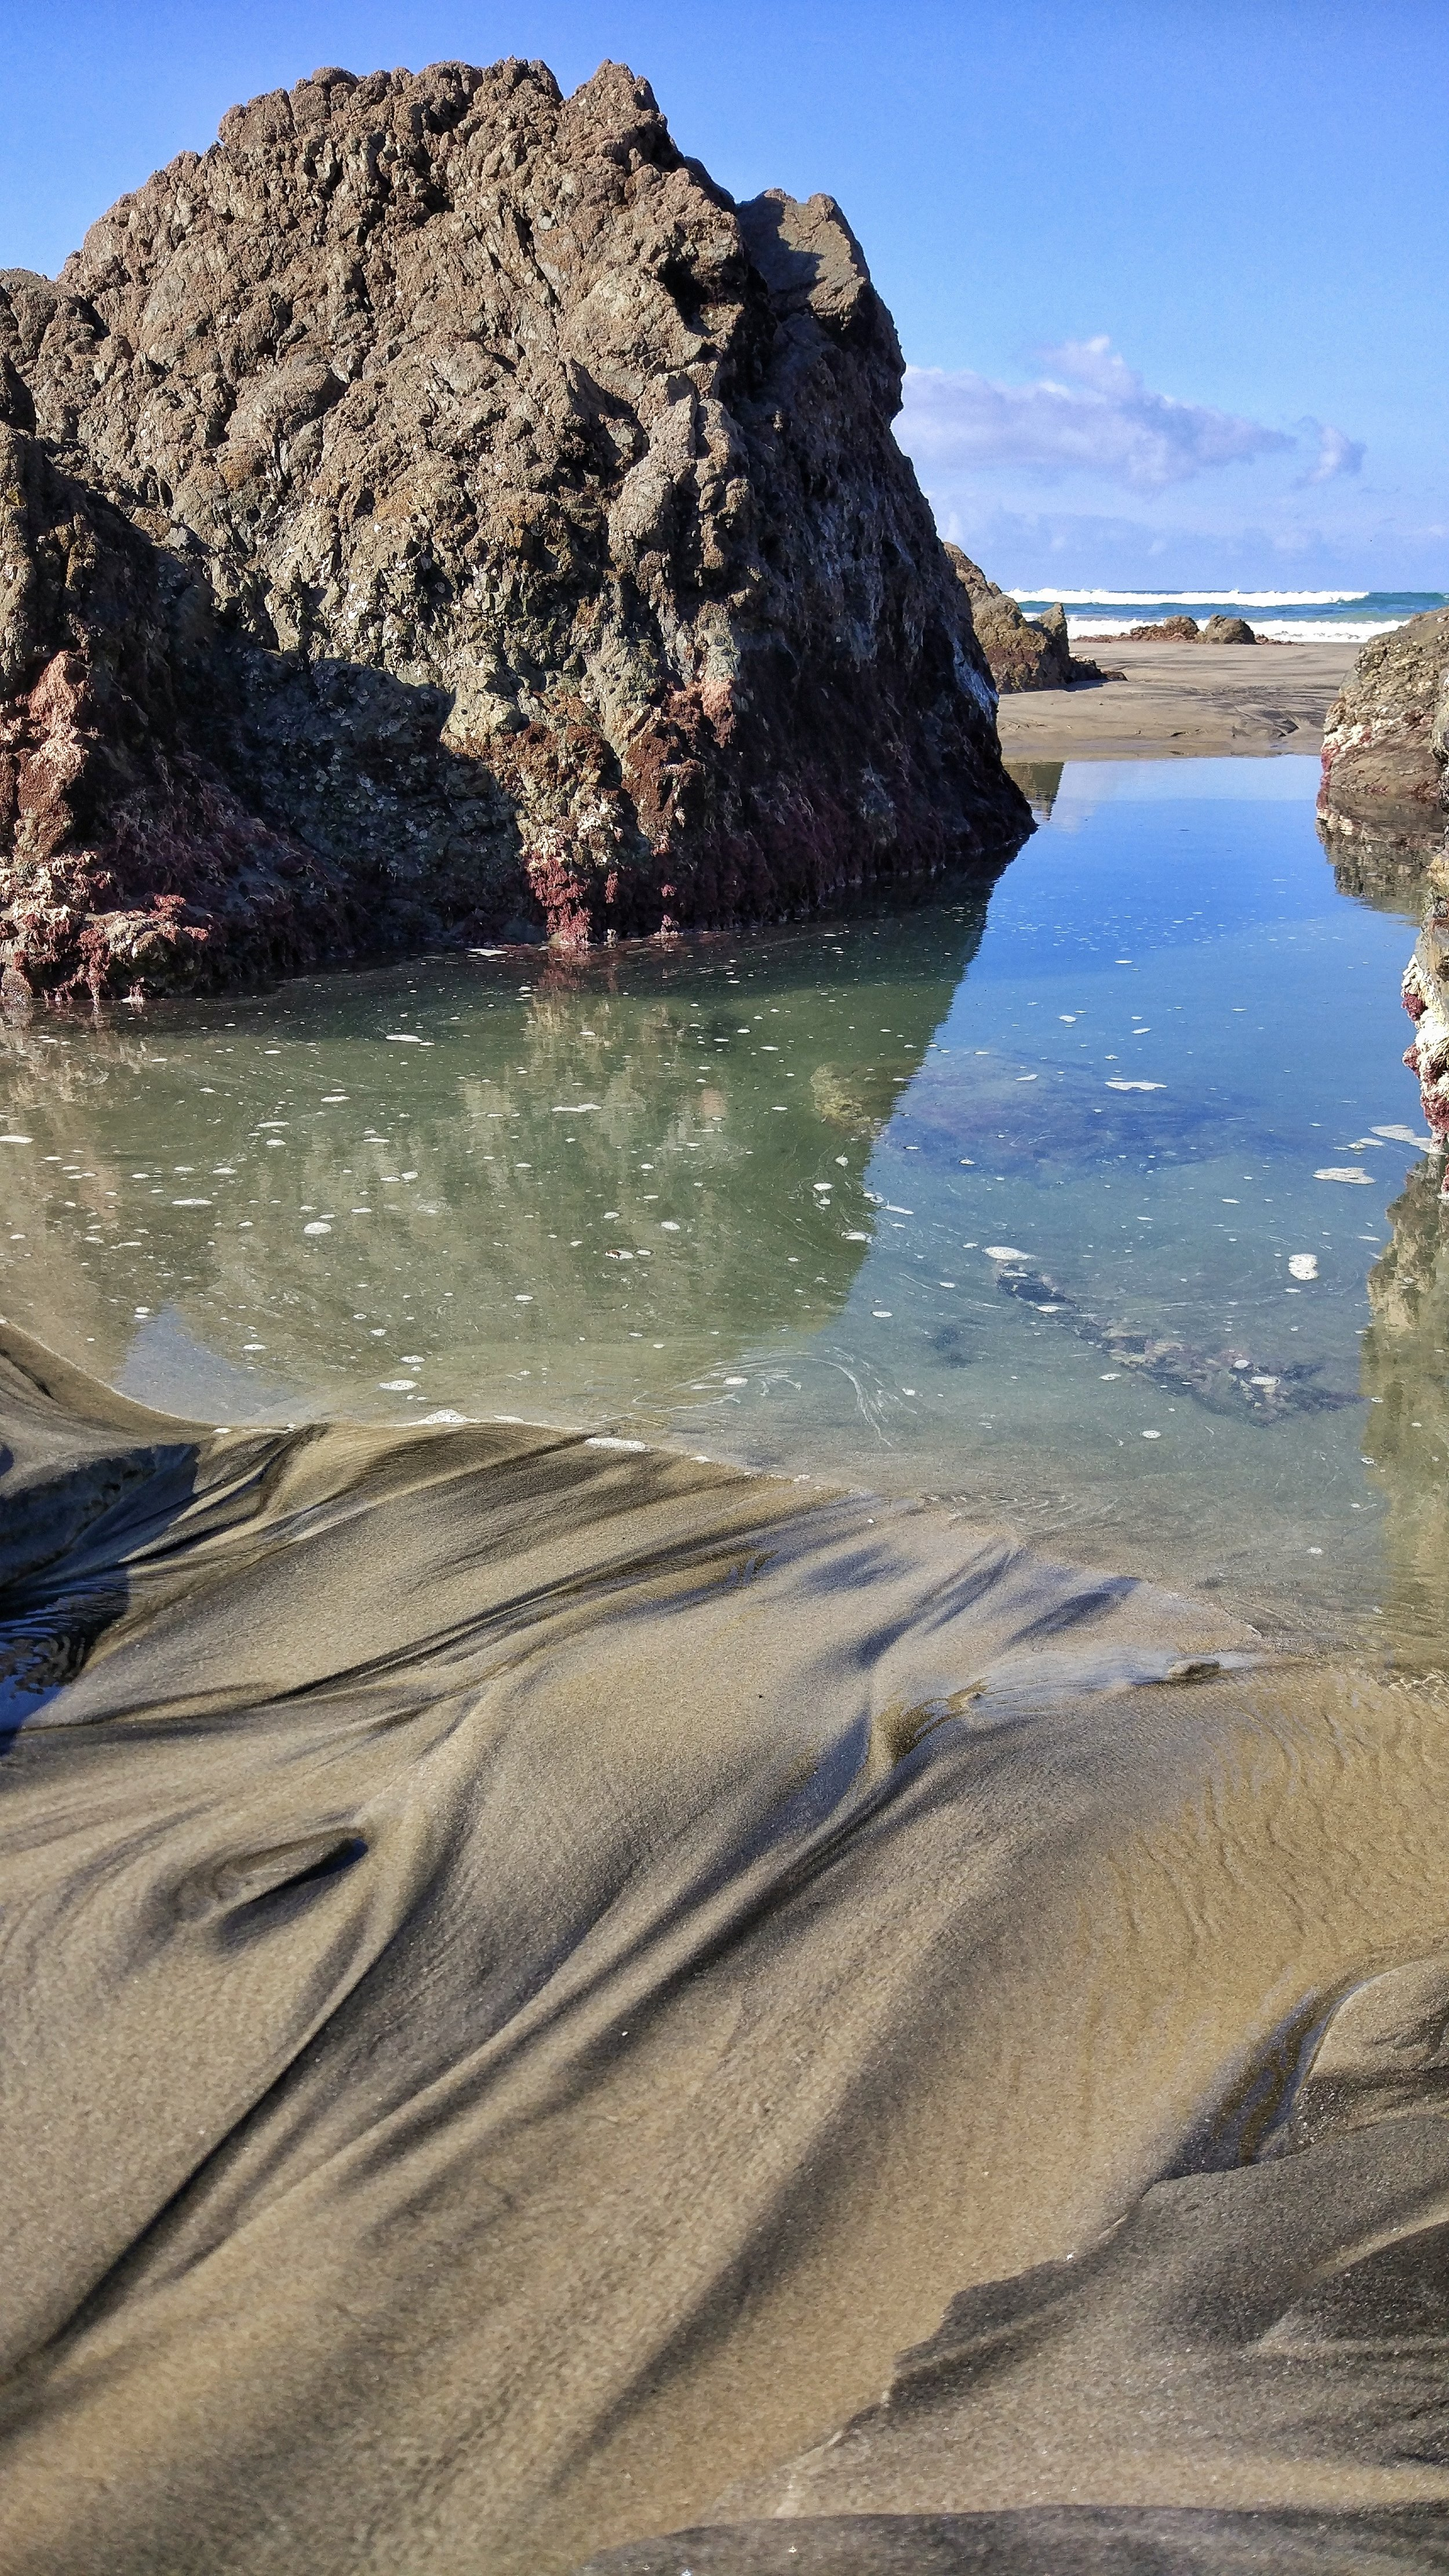 Rock pools and sand patterns at low tide